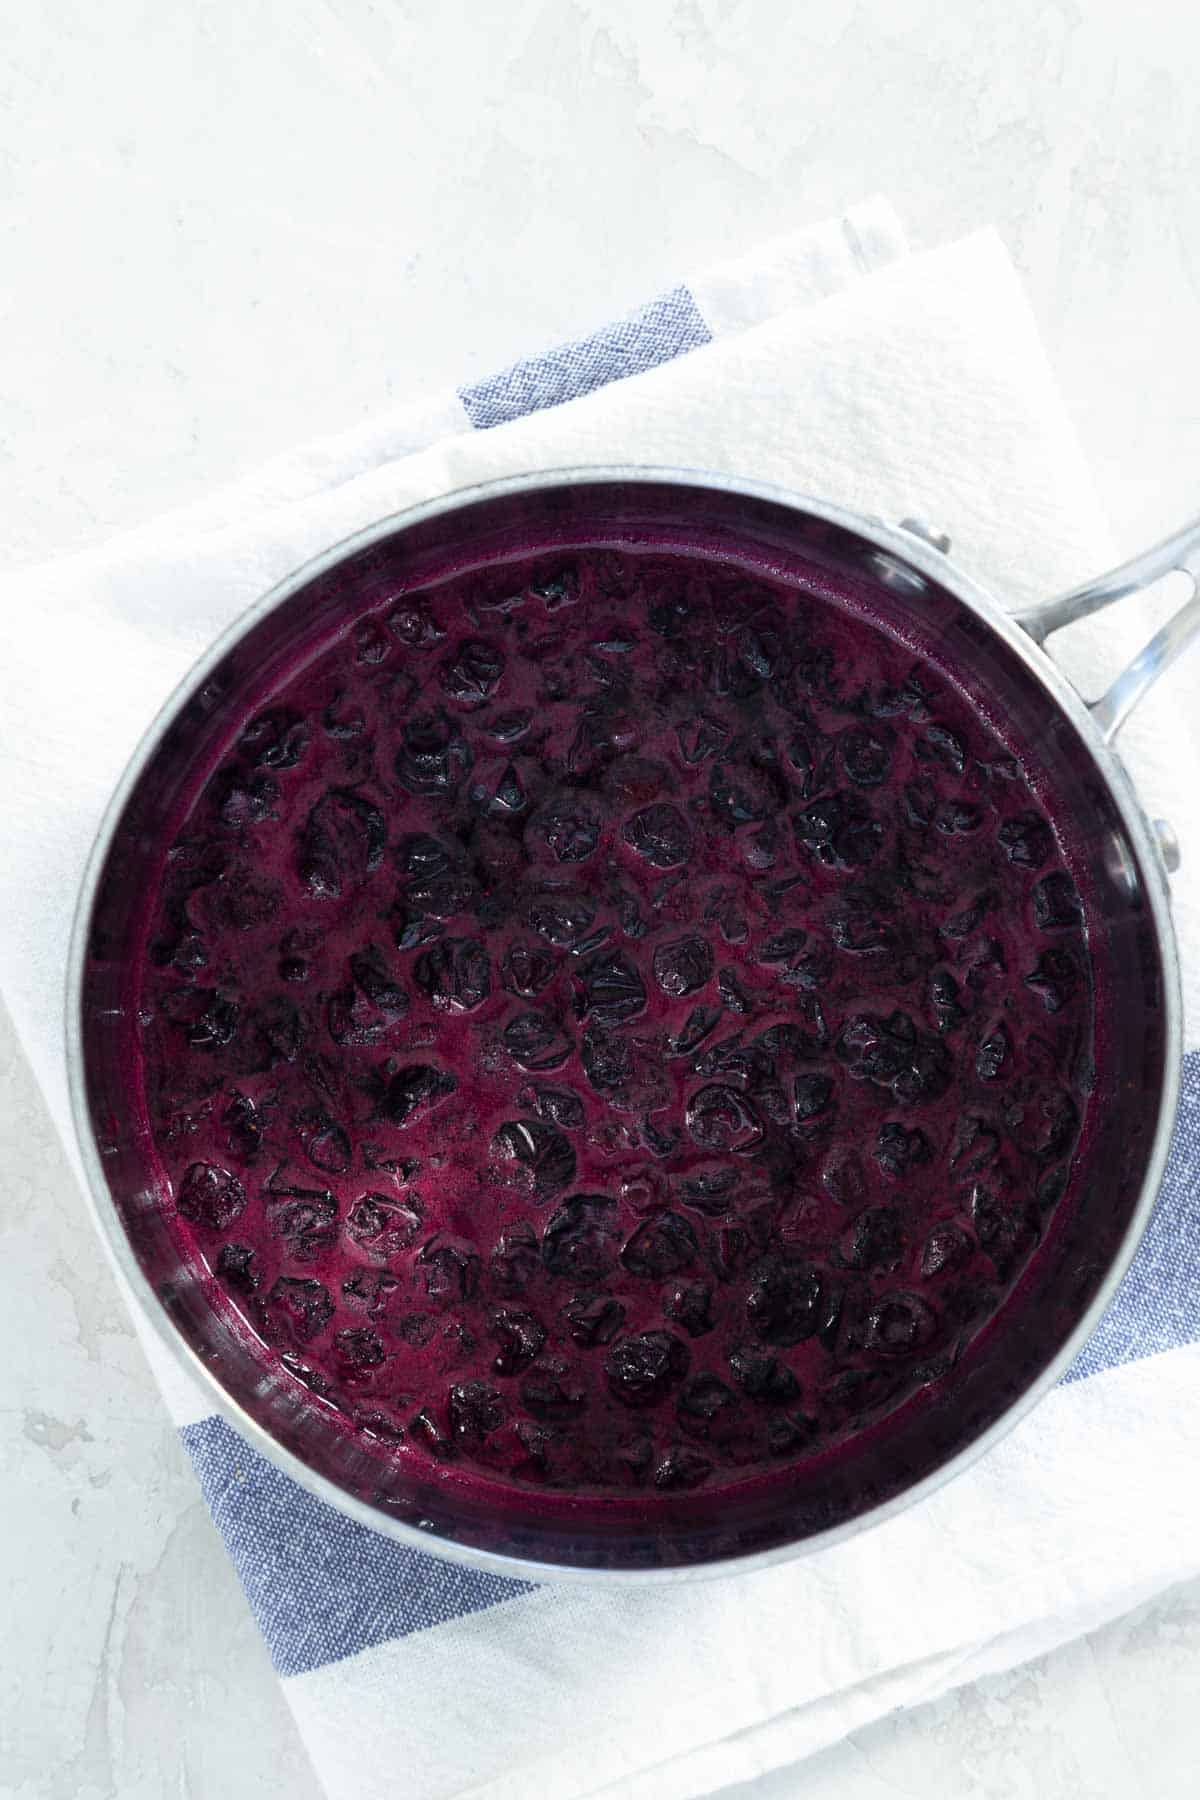 Pot with simmering blueberries in syrup